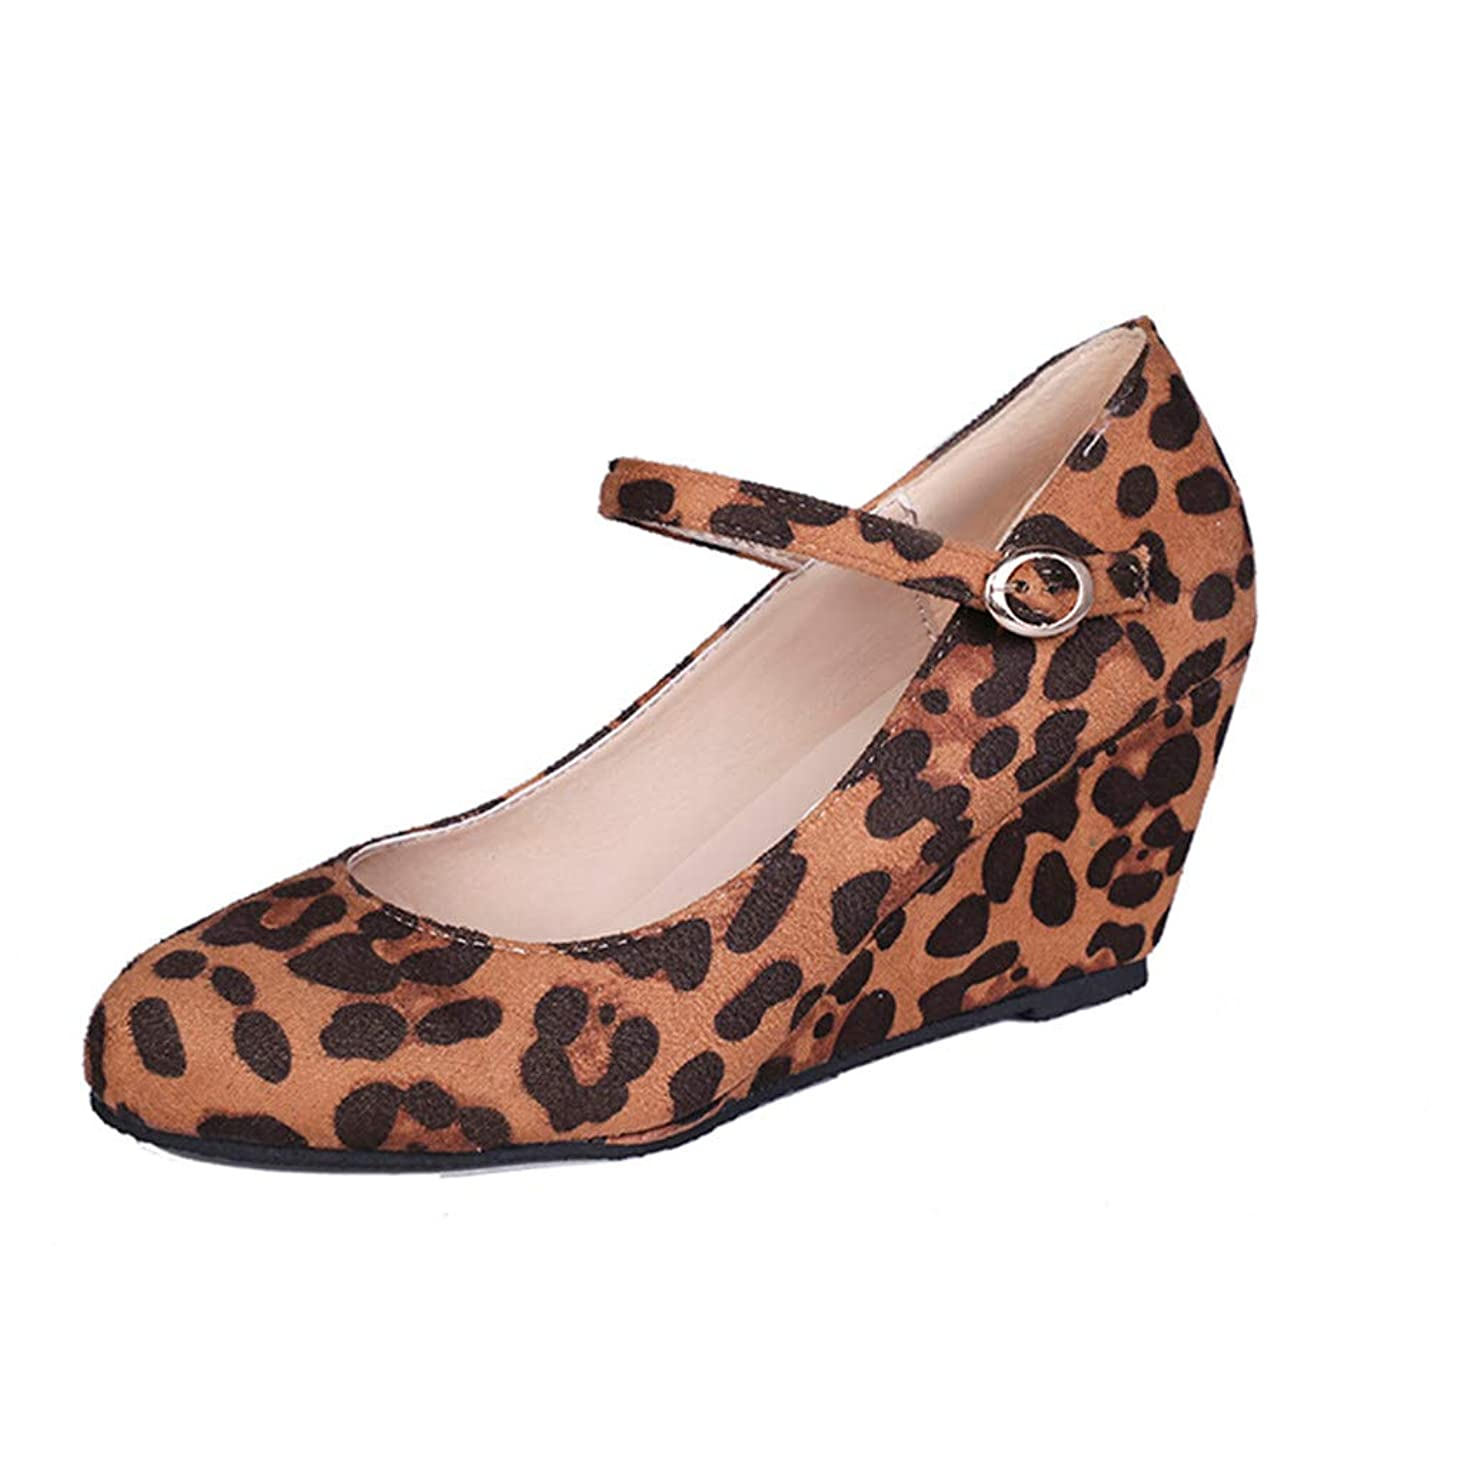 Fashion Respctful? Women's Mary Jane Closed Round Toe Buckled Strap Ankle Strappy Wedge Pump